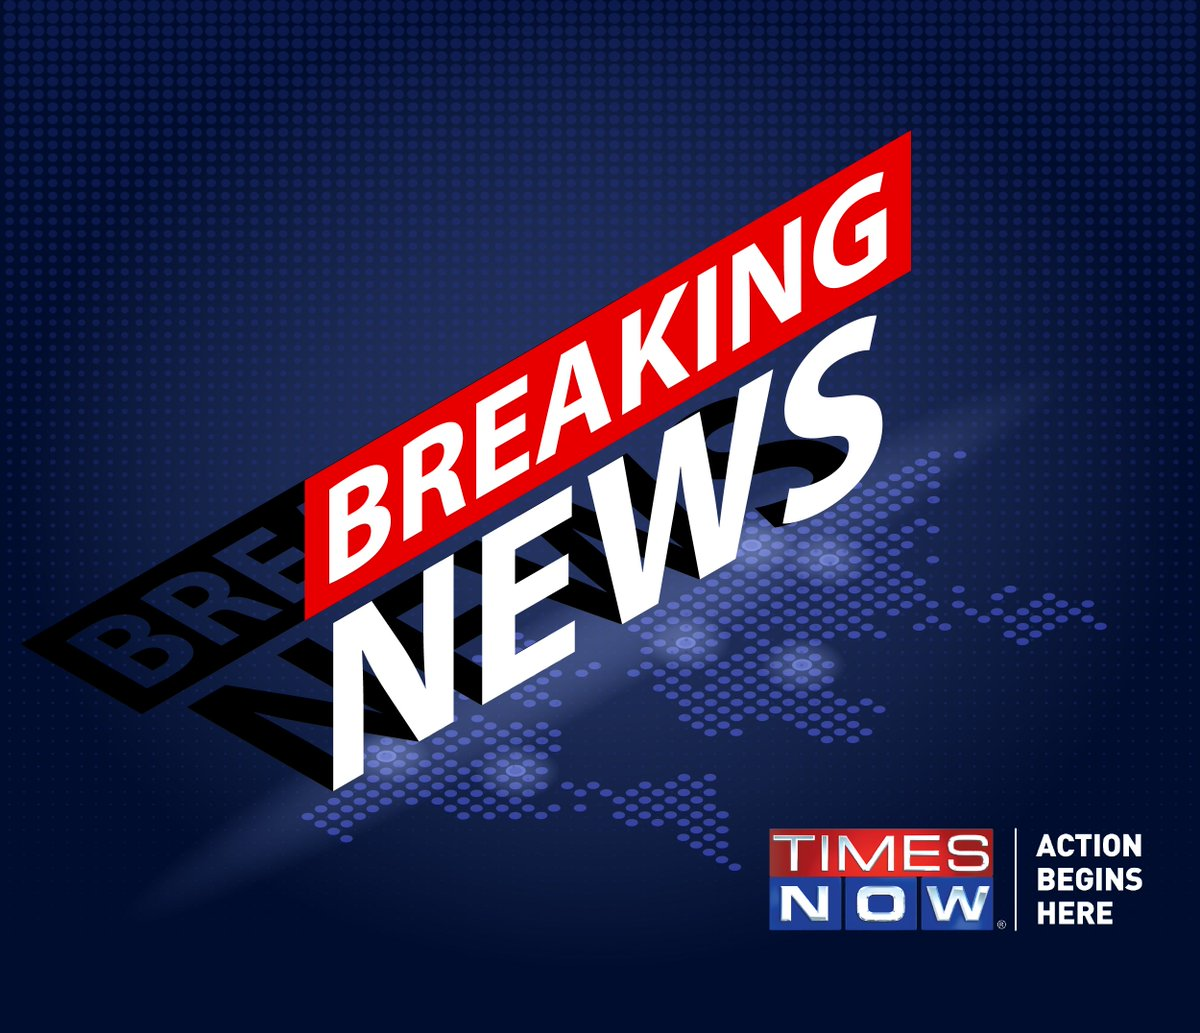 Mega TIMES NOW impact: Kerala cops makes 5 arrests; Woman's father and brother arrested #JusticeForKevin